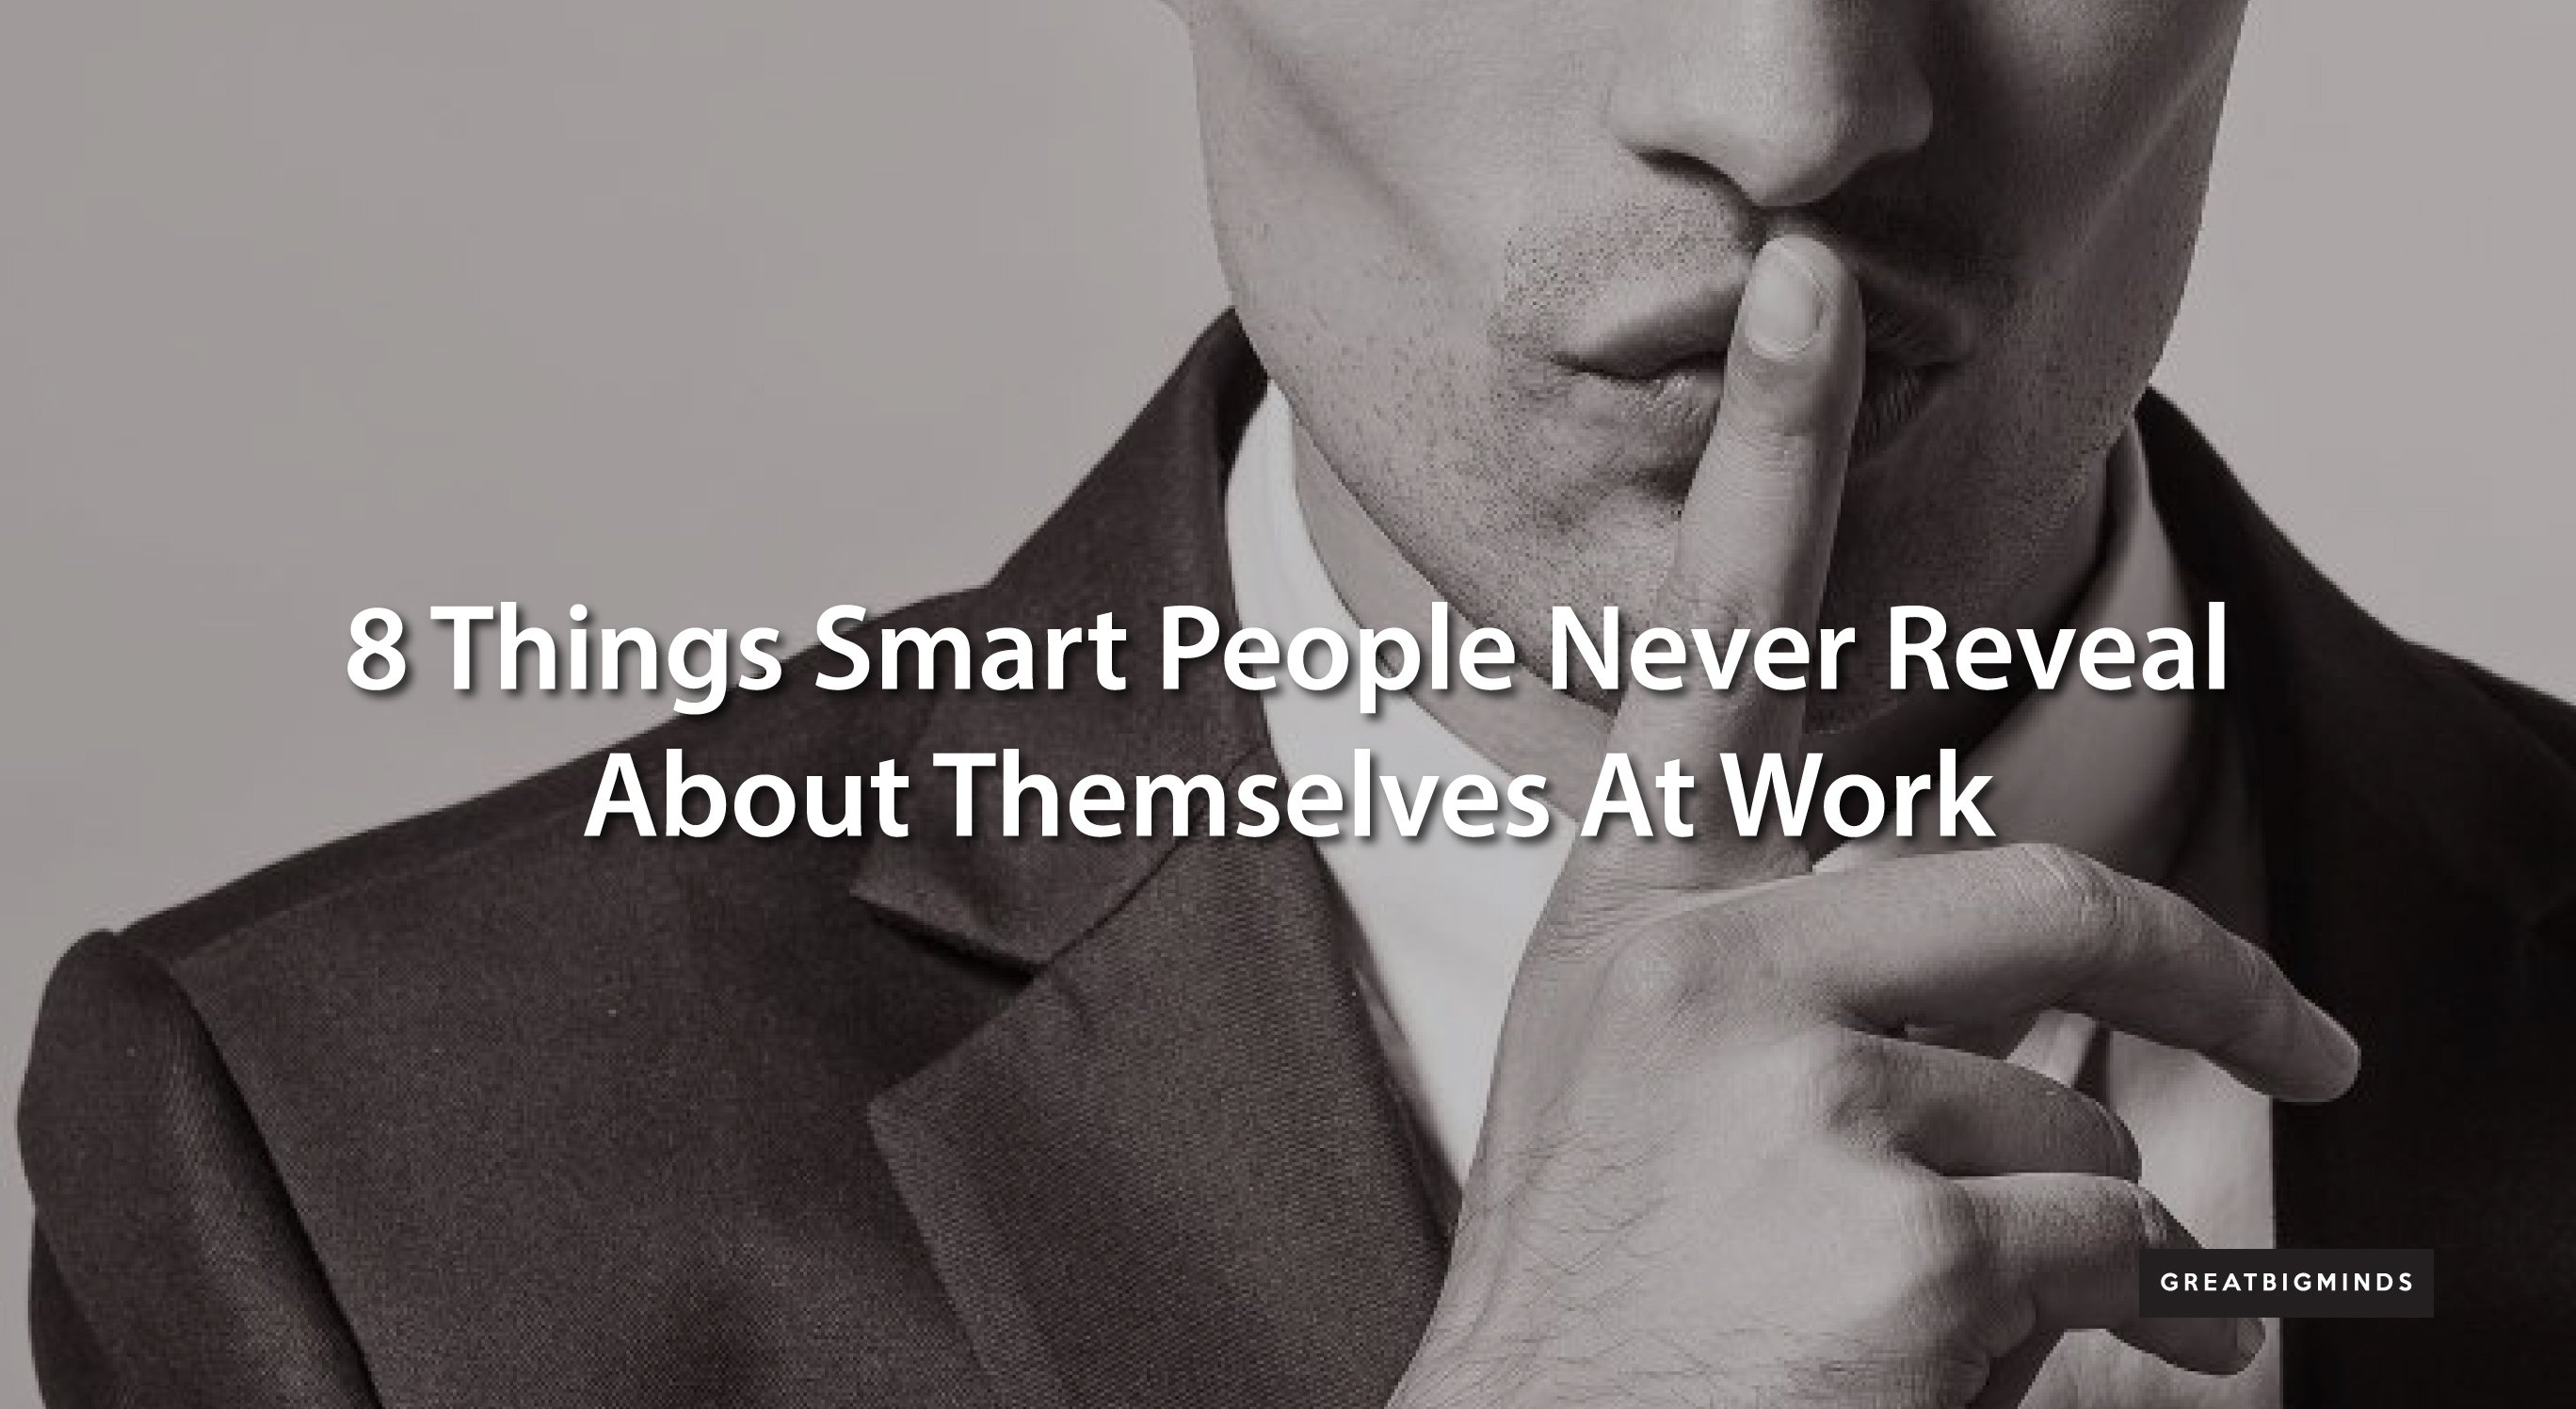 8 Things Smart People Never Reveal About Themselves At Work